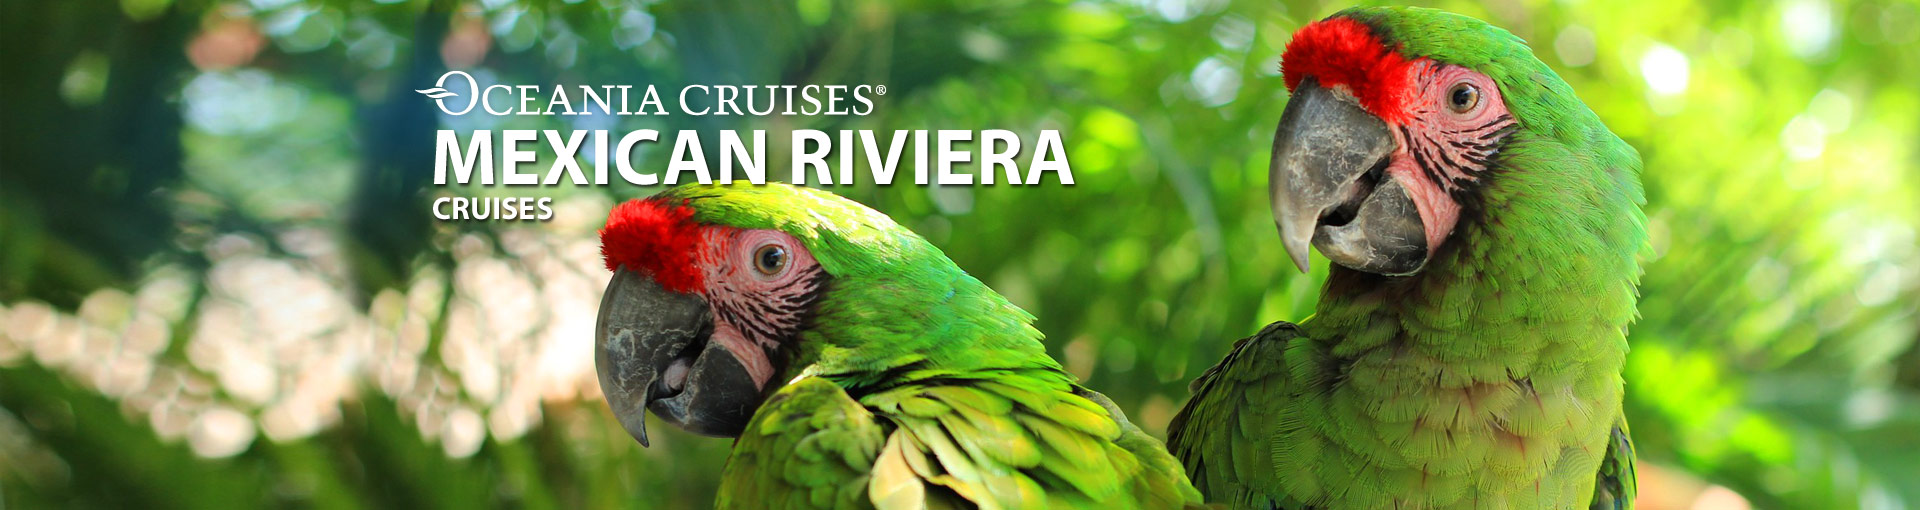 Banner for Oceania cruises to the Mexican Riviera